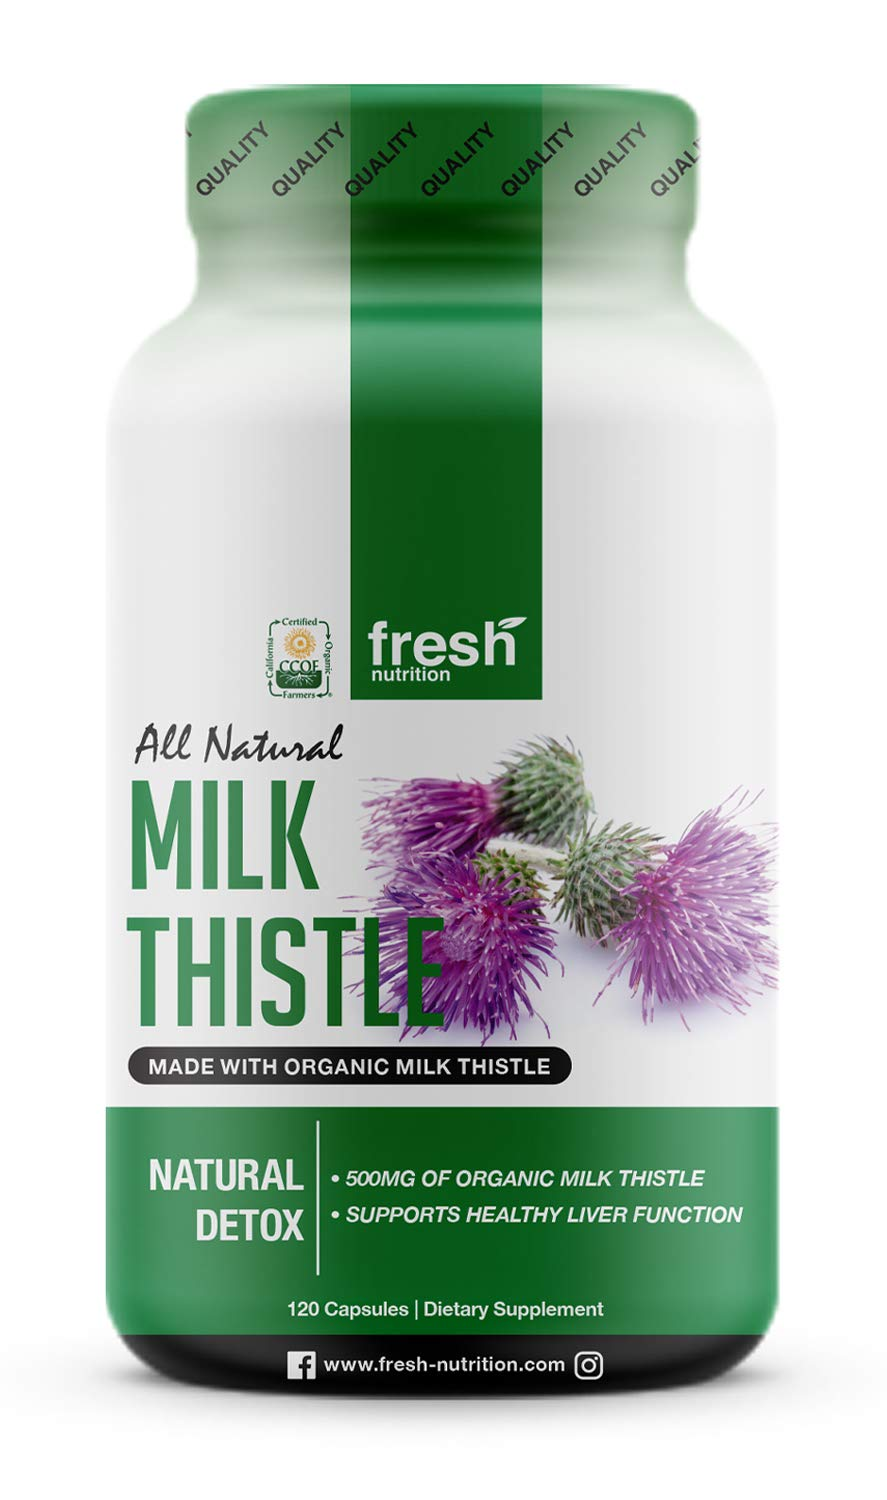 Milk Thistle Organic - 120 Servings of 2000mg - Strong – 4 Month Supply – CCOF Organic - Silymarin Thisilyn Seed Standardized Extract 4:1 Capsules - Great for Liver Cleanse - USA